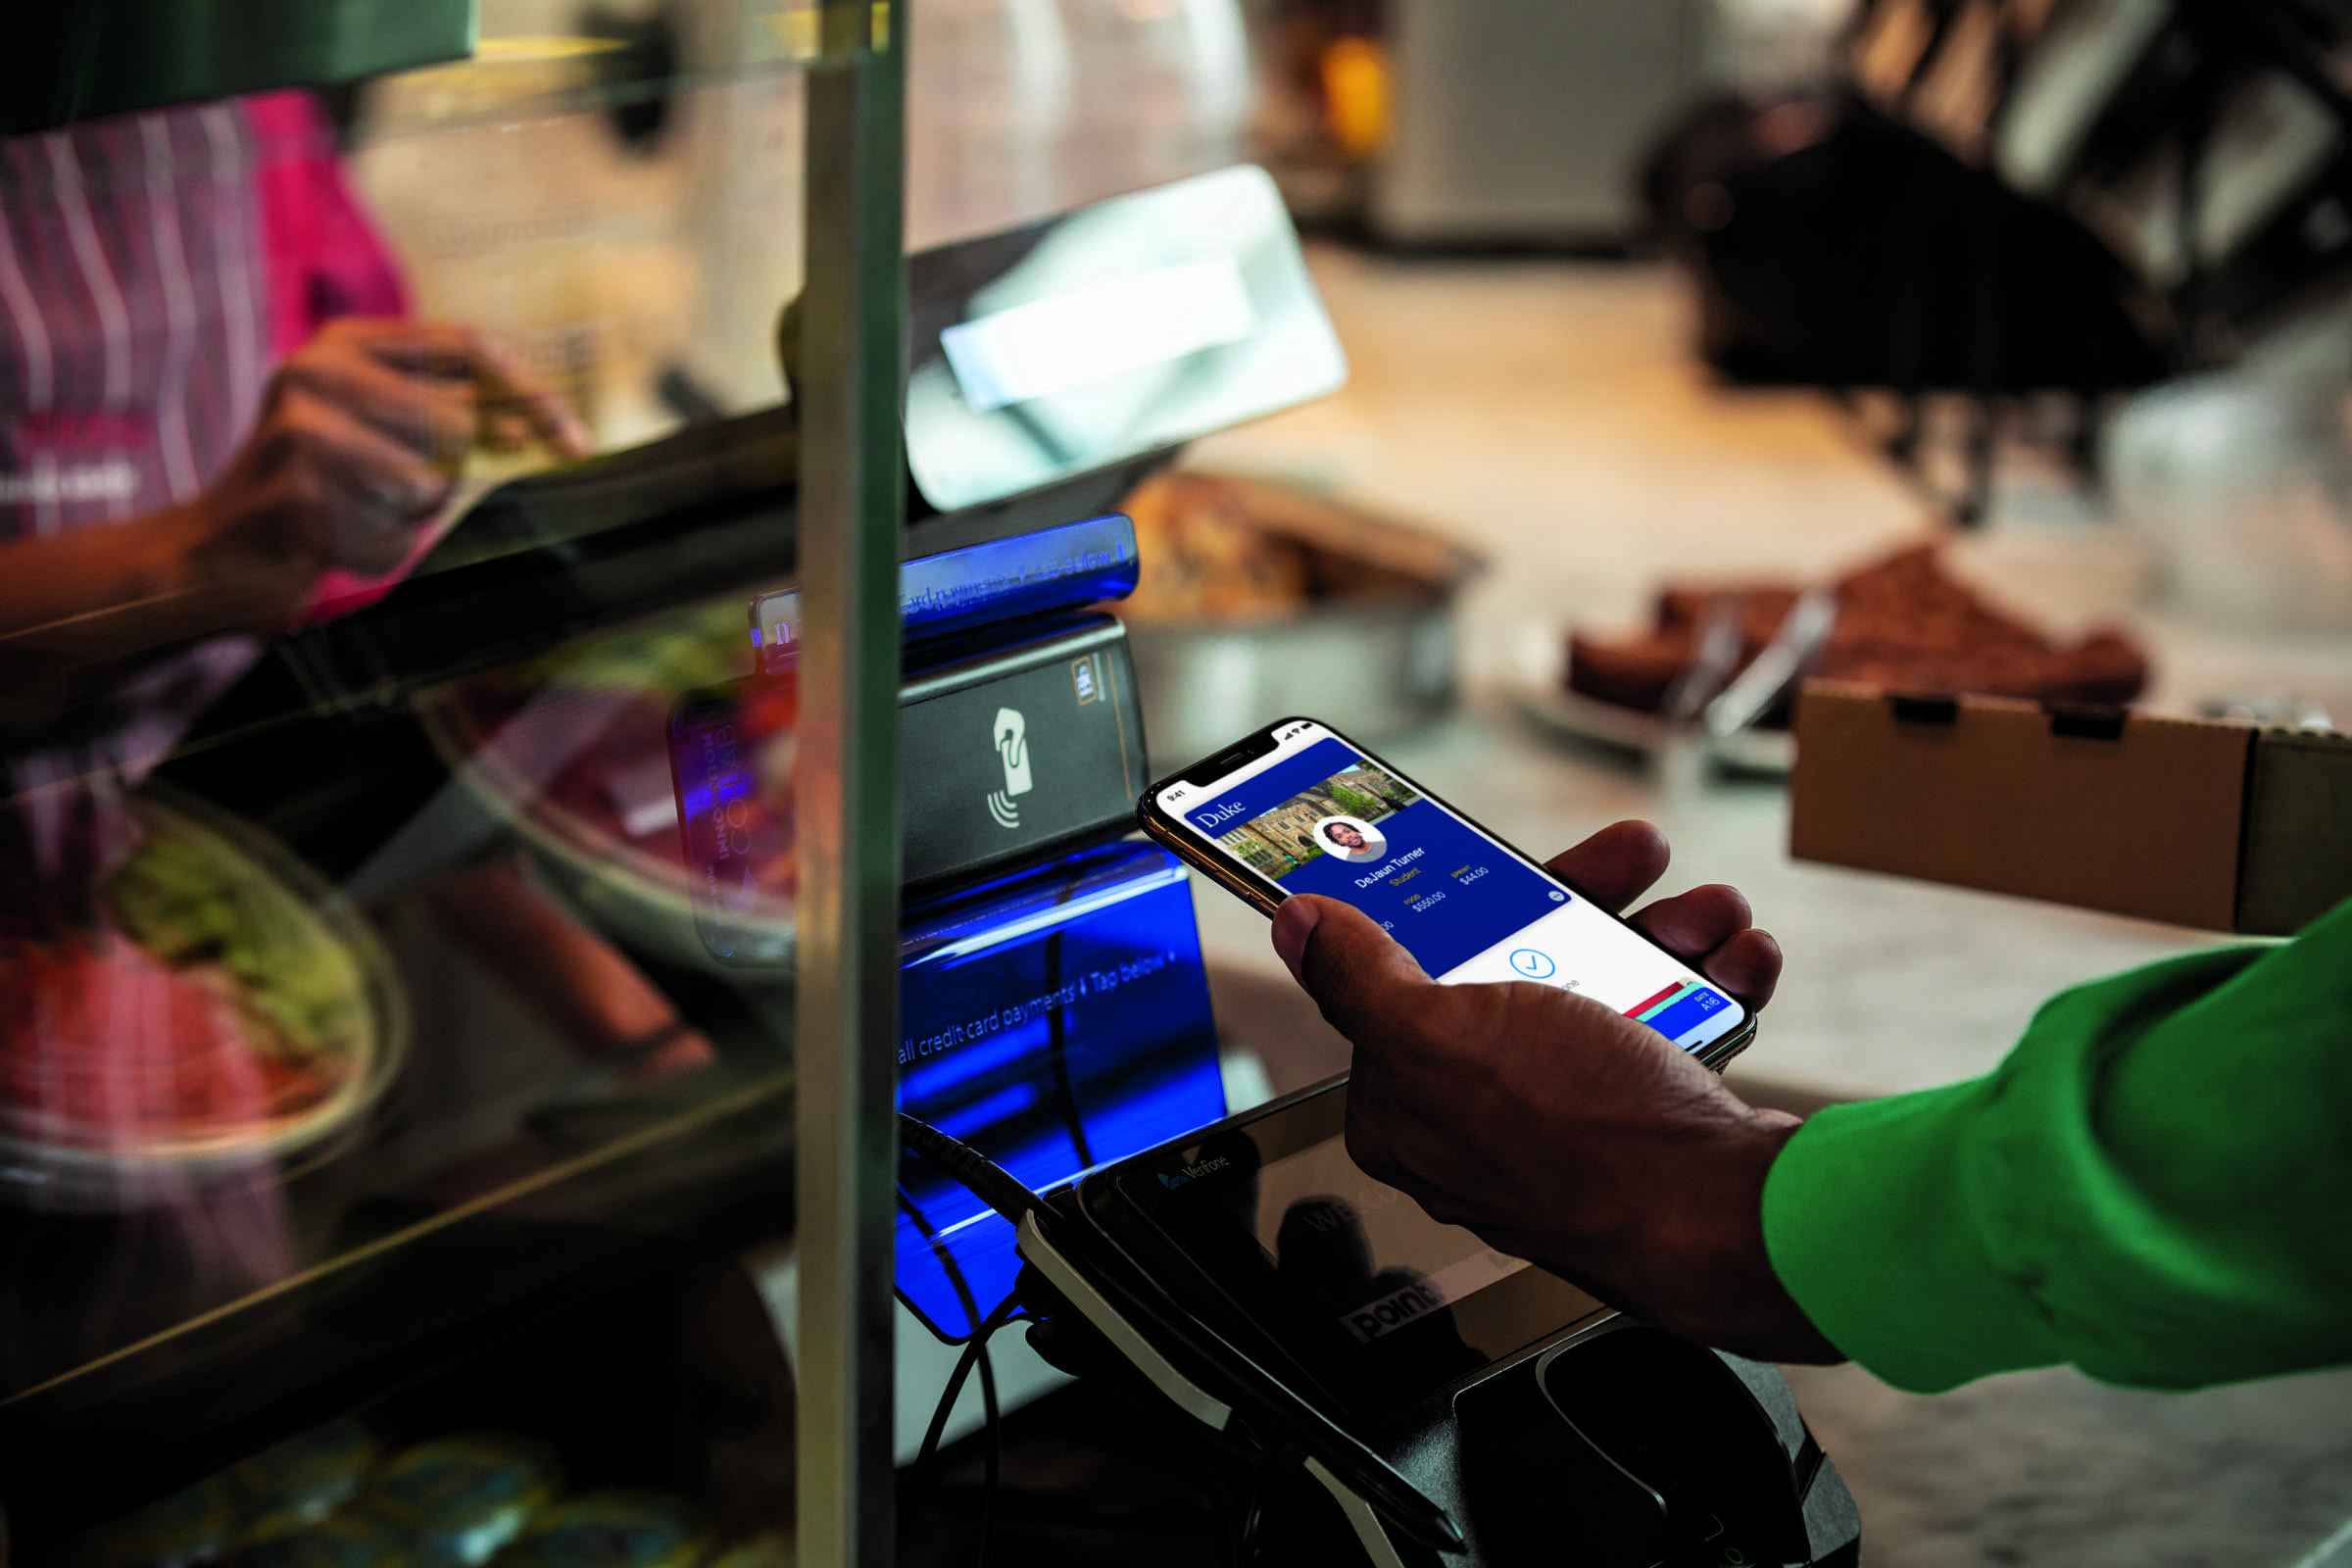 student-id-card-in-apple-wallet-in-action-at-duke-dining-1